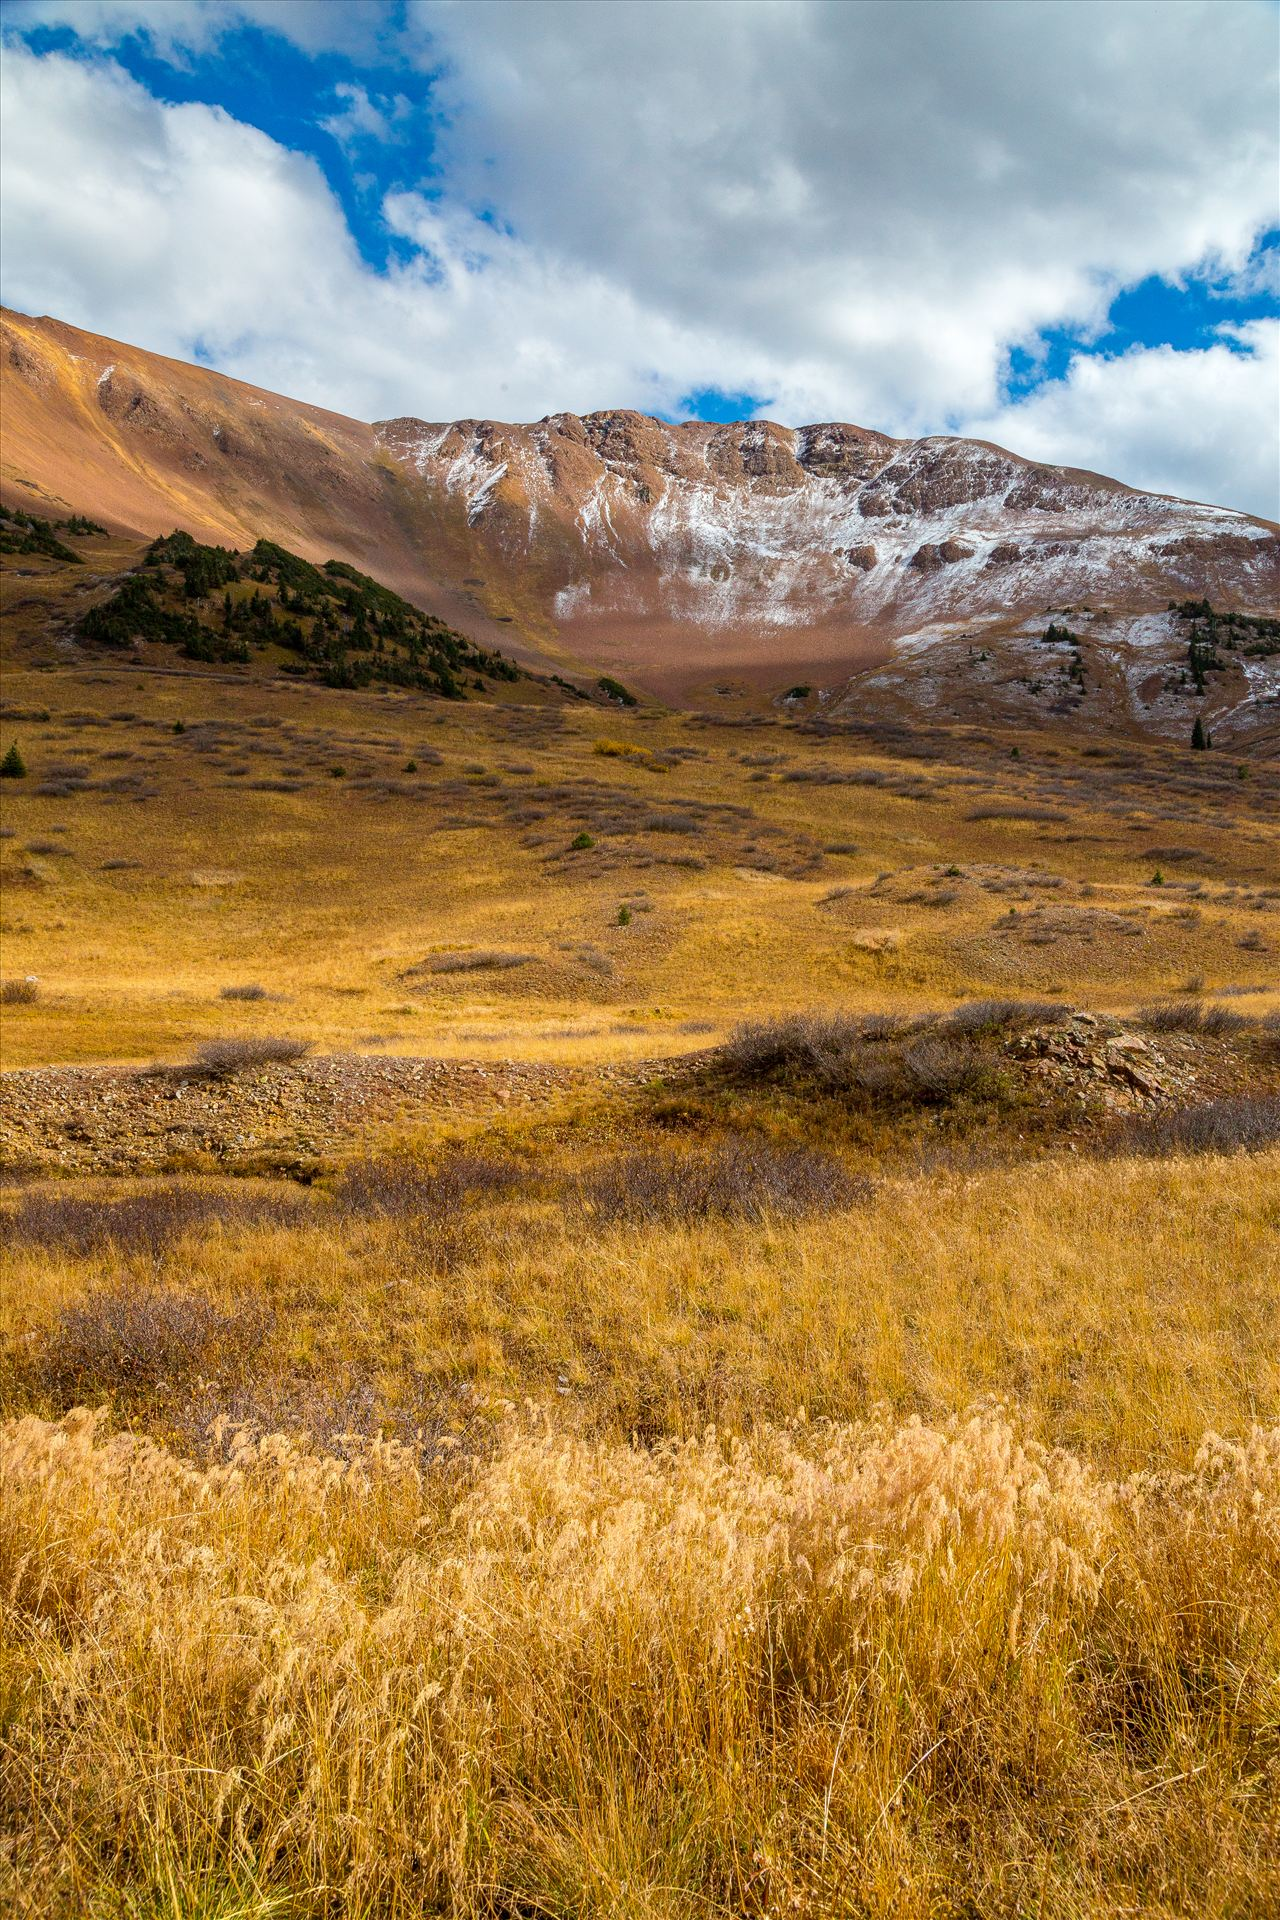 Snow and Grasses at Mount Baldy Wilderness Snow and fall grasses on the peaks at the Mount Baldy Wilderness area, near the summit. Taken from Schofield Pass in Crested Butte, Colorado. by Scott Smith Photos